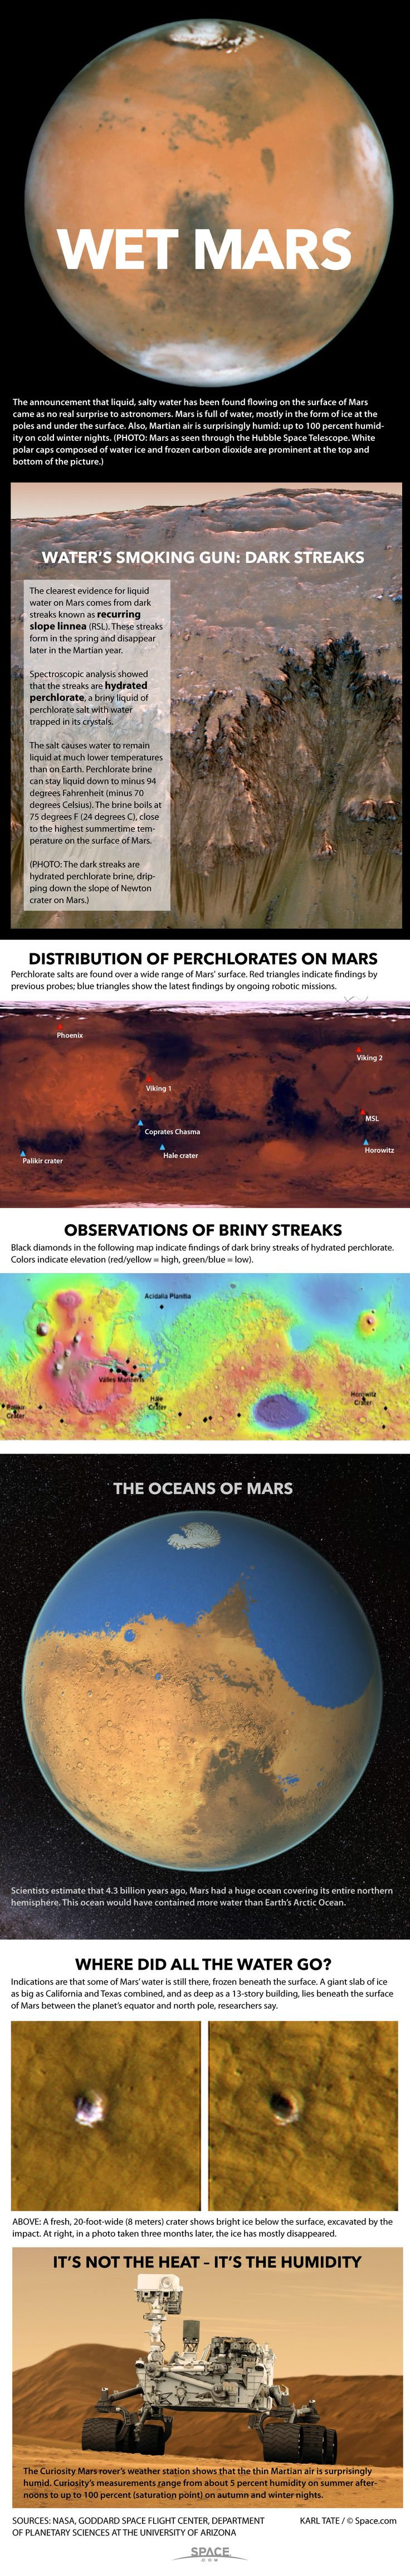 After decades of speculation, scientists now know for sure that liquid, salty water flows on the surface of Mars. See what the discovery means in our infographic.